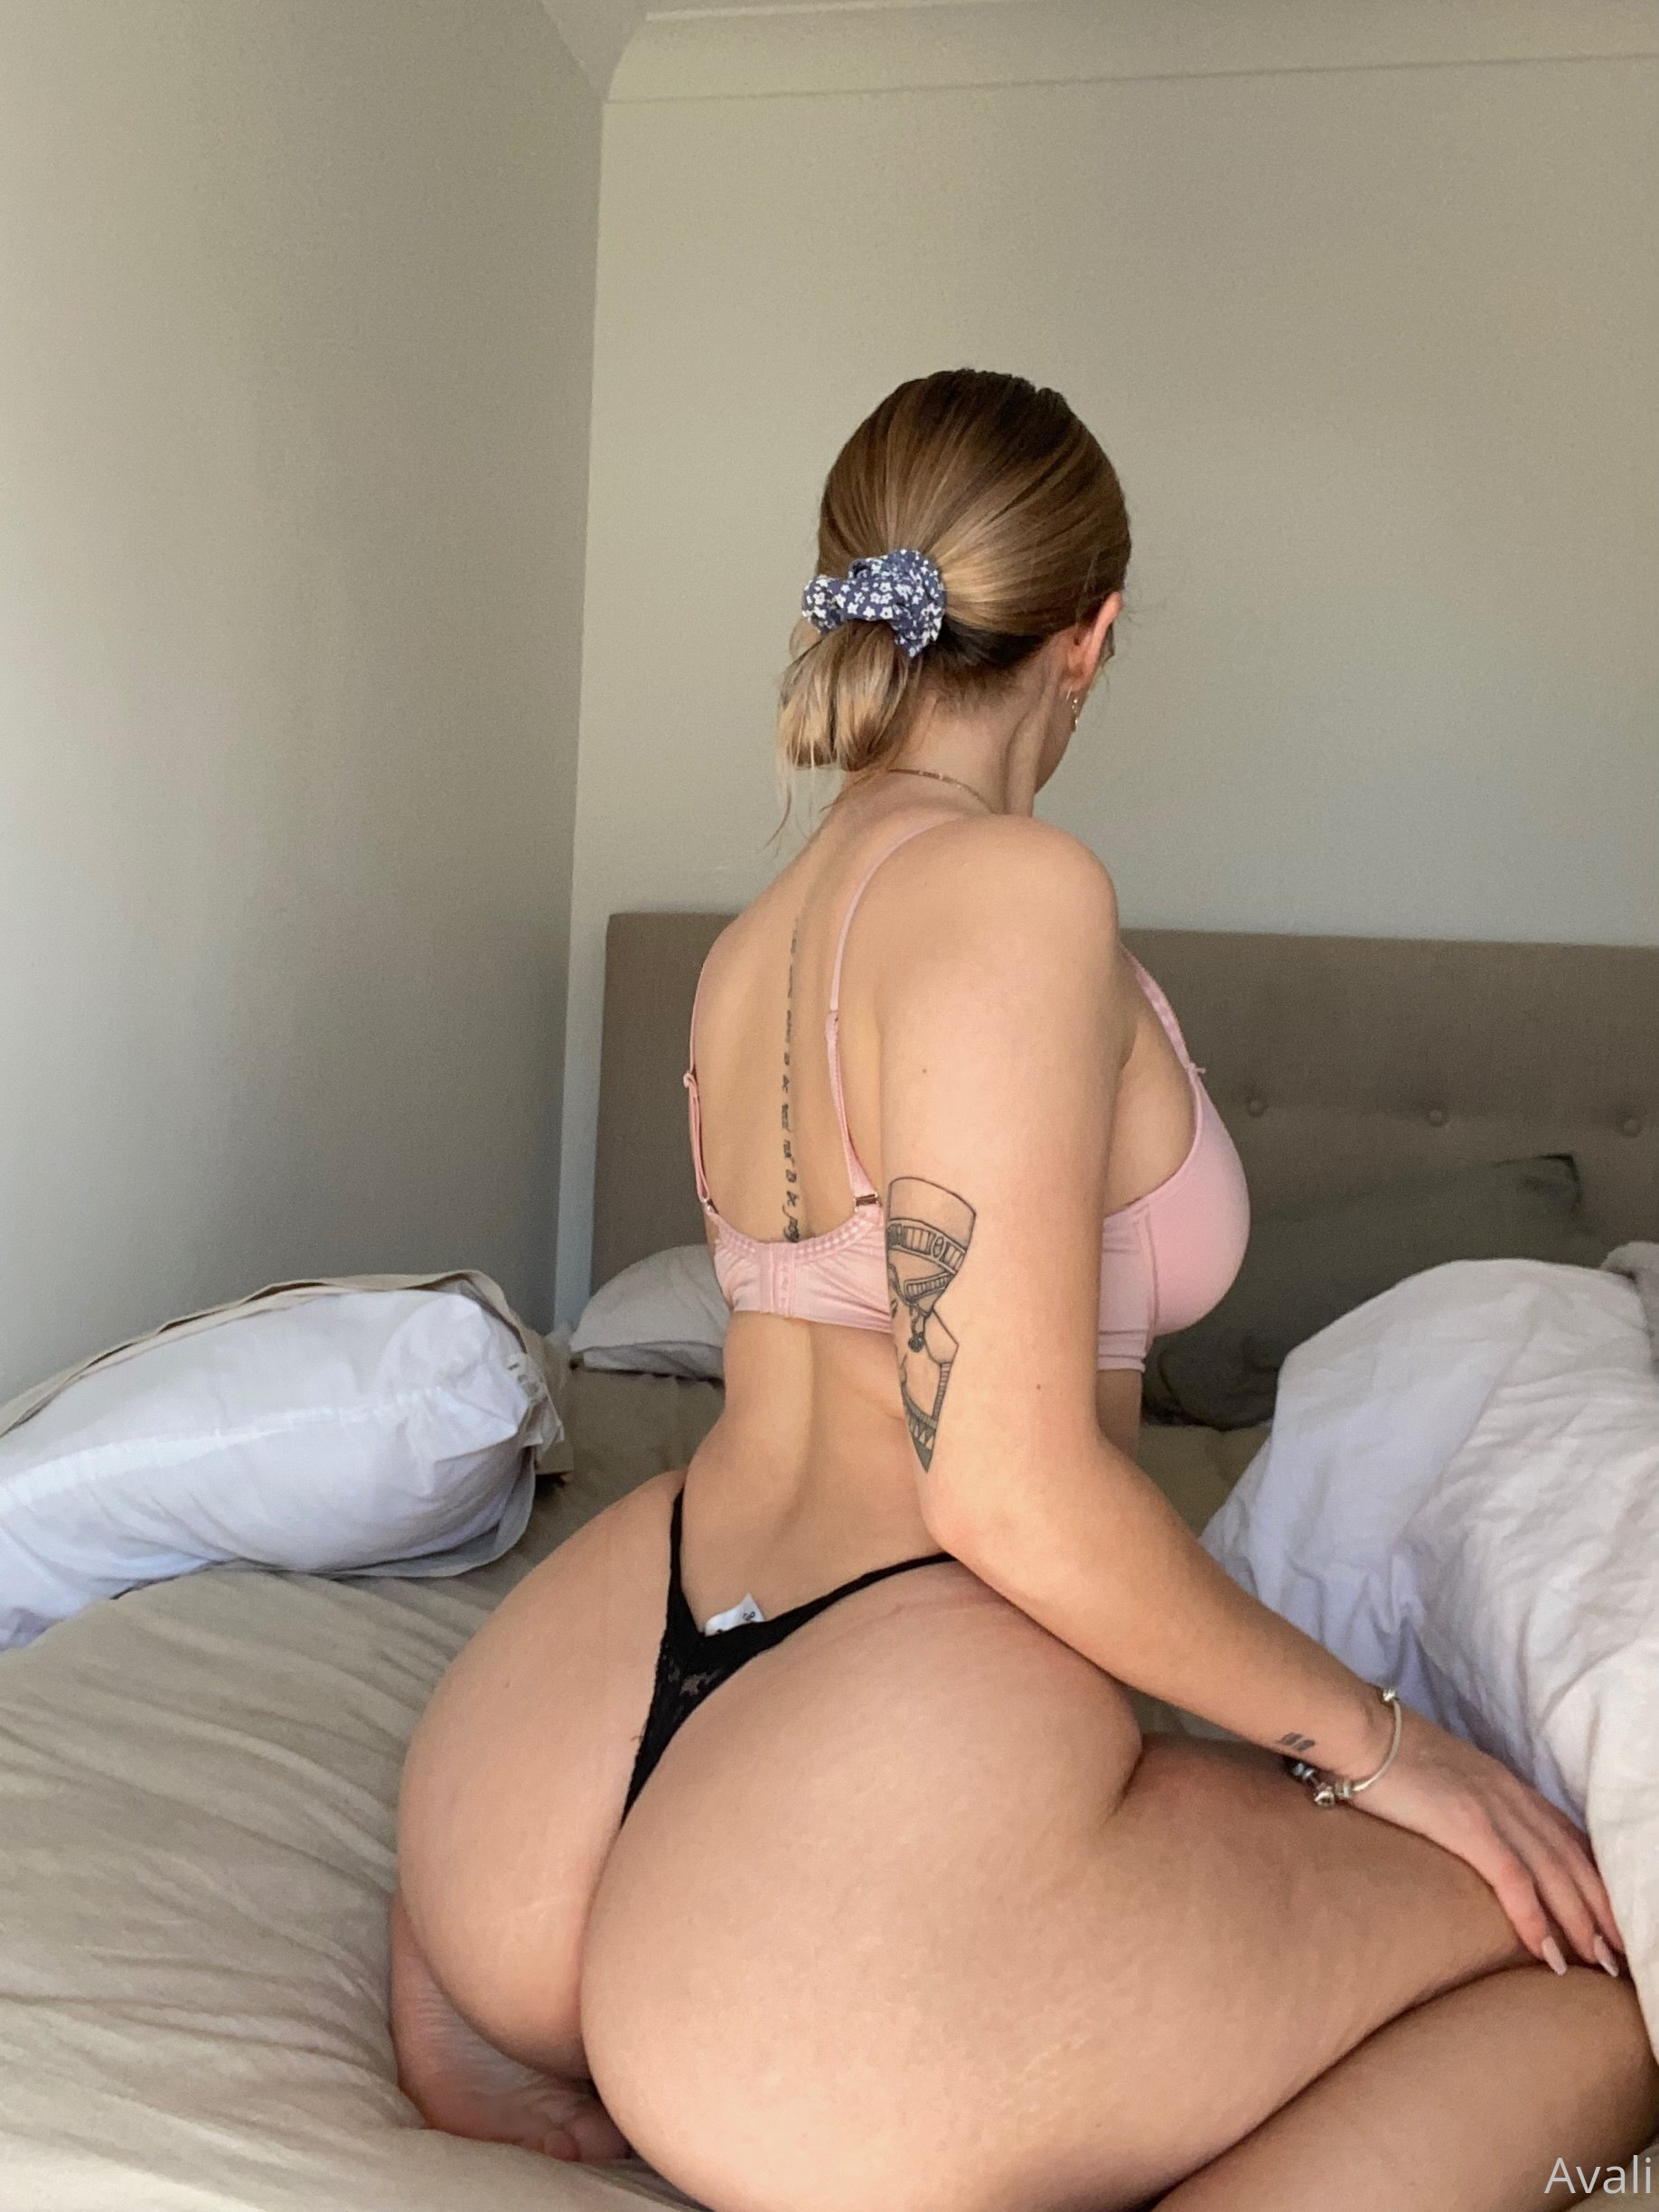 Lilith Cavaliere, Lilithcavalierex, Onlyfans 0024